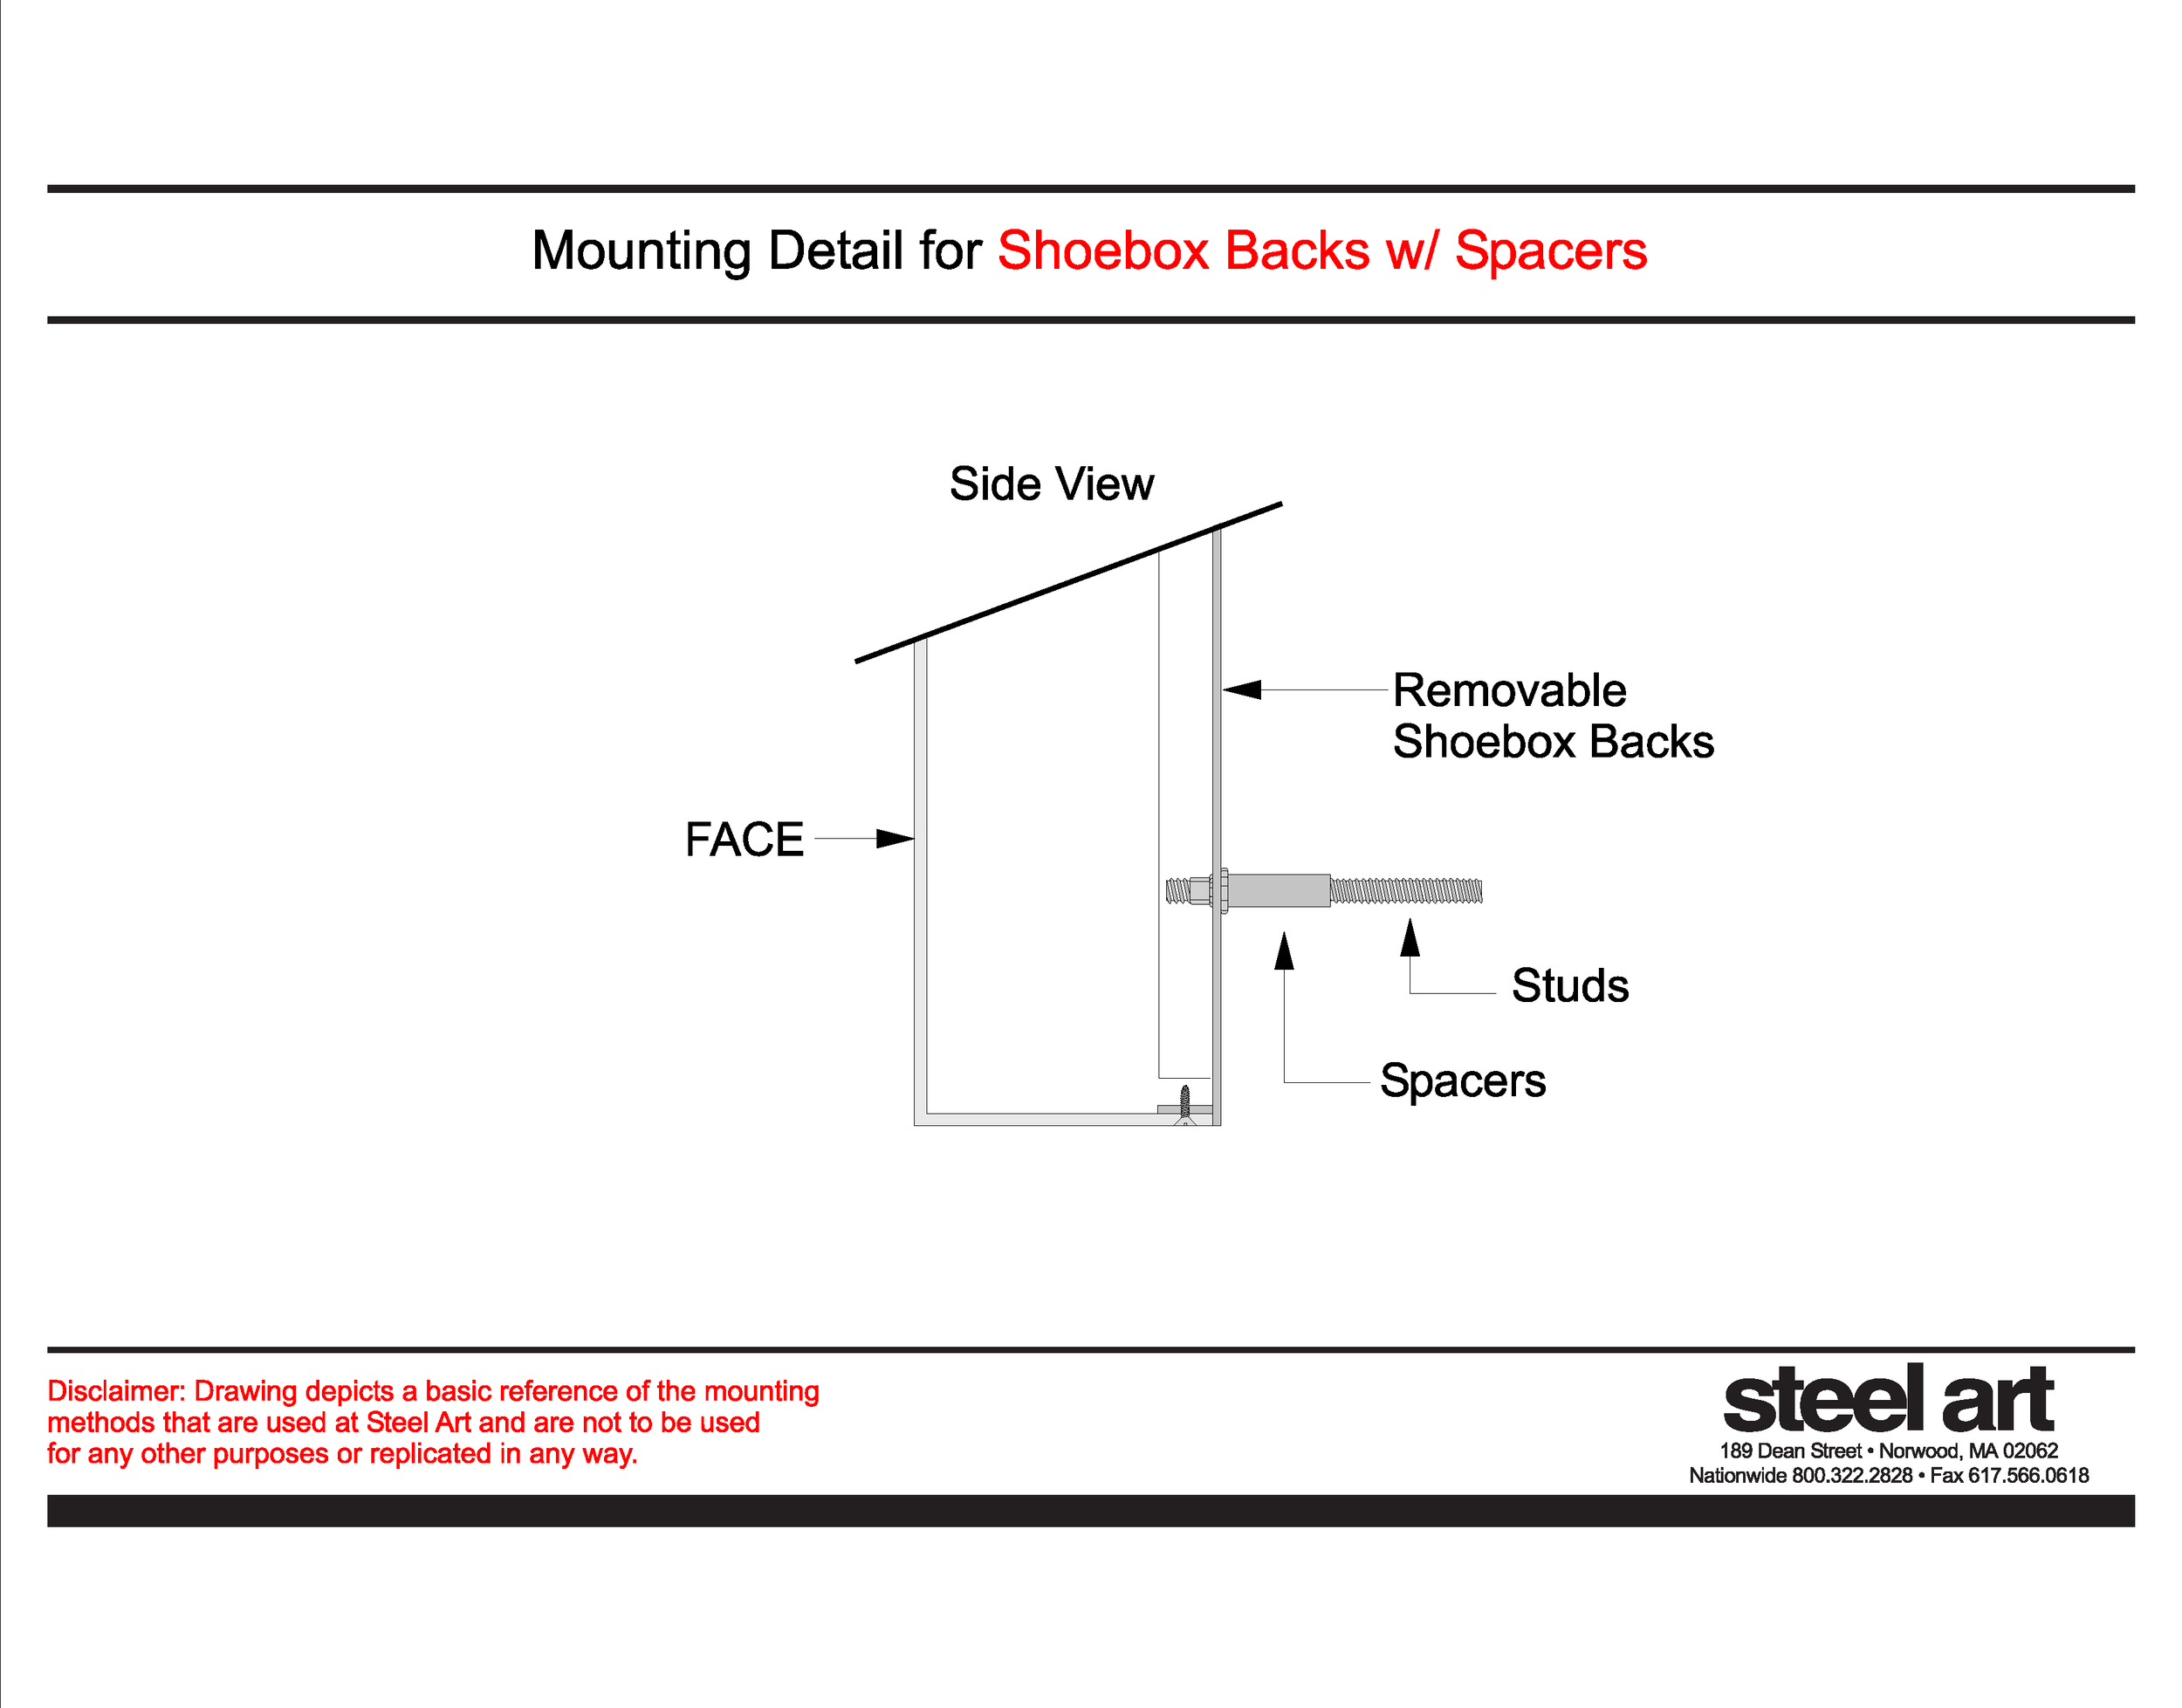 Mounting Detail for Shoebox Backs & Spacers.png